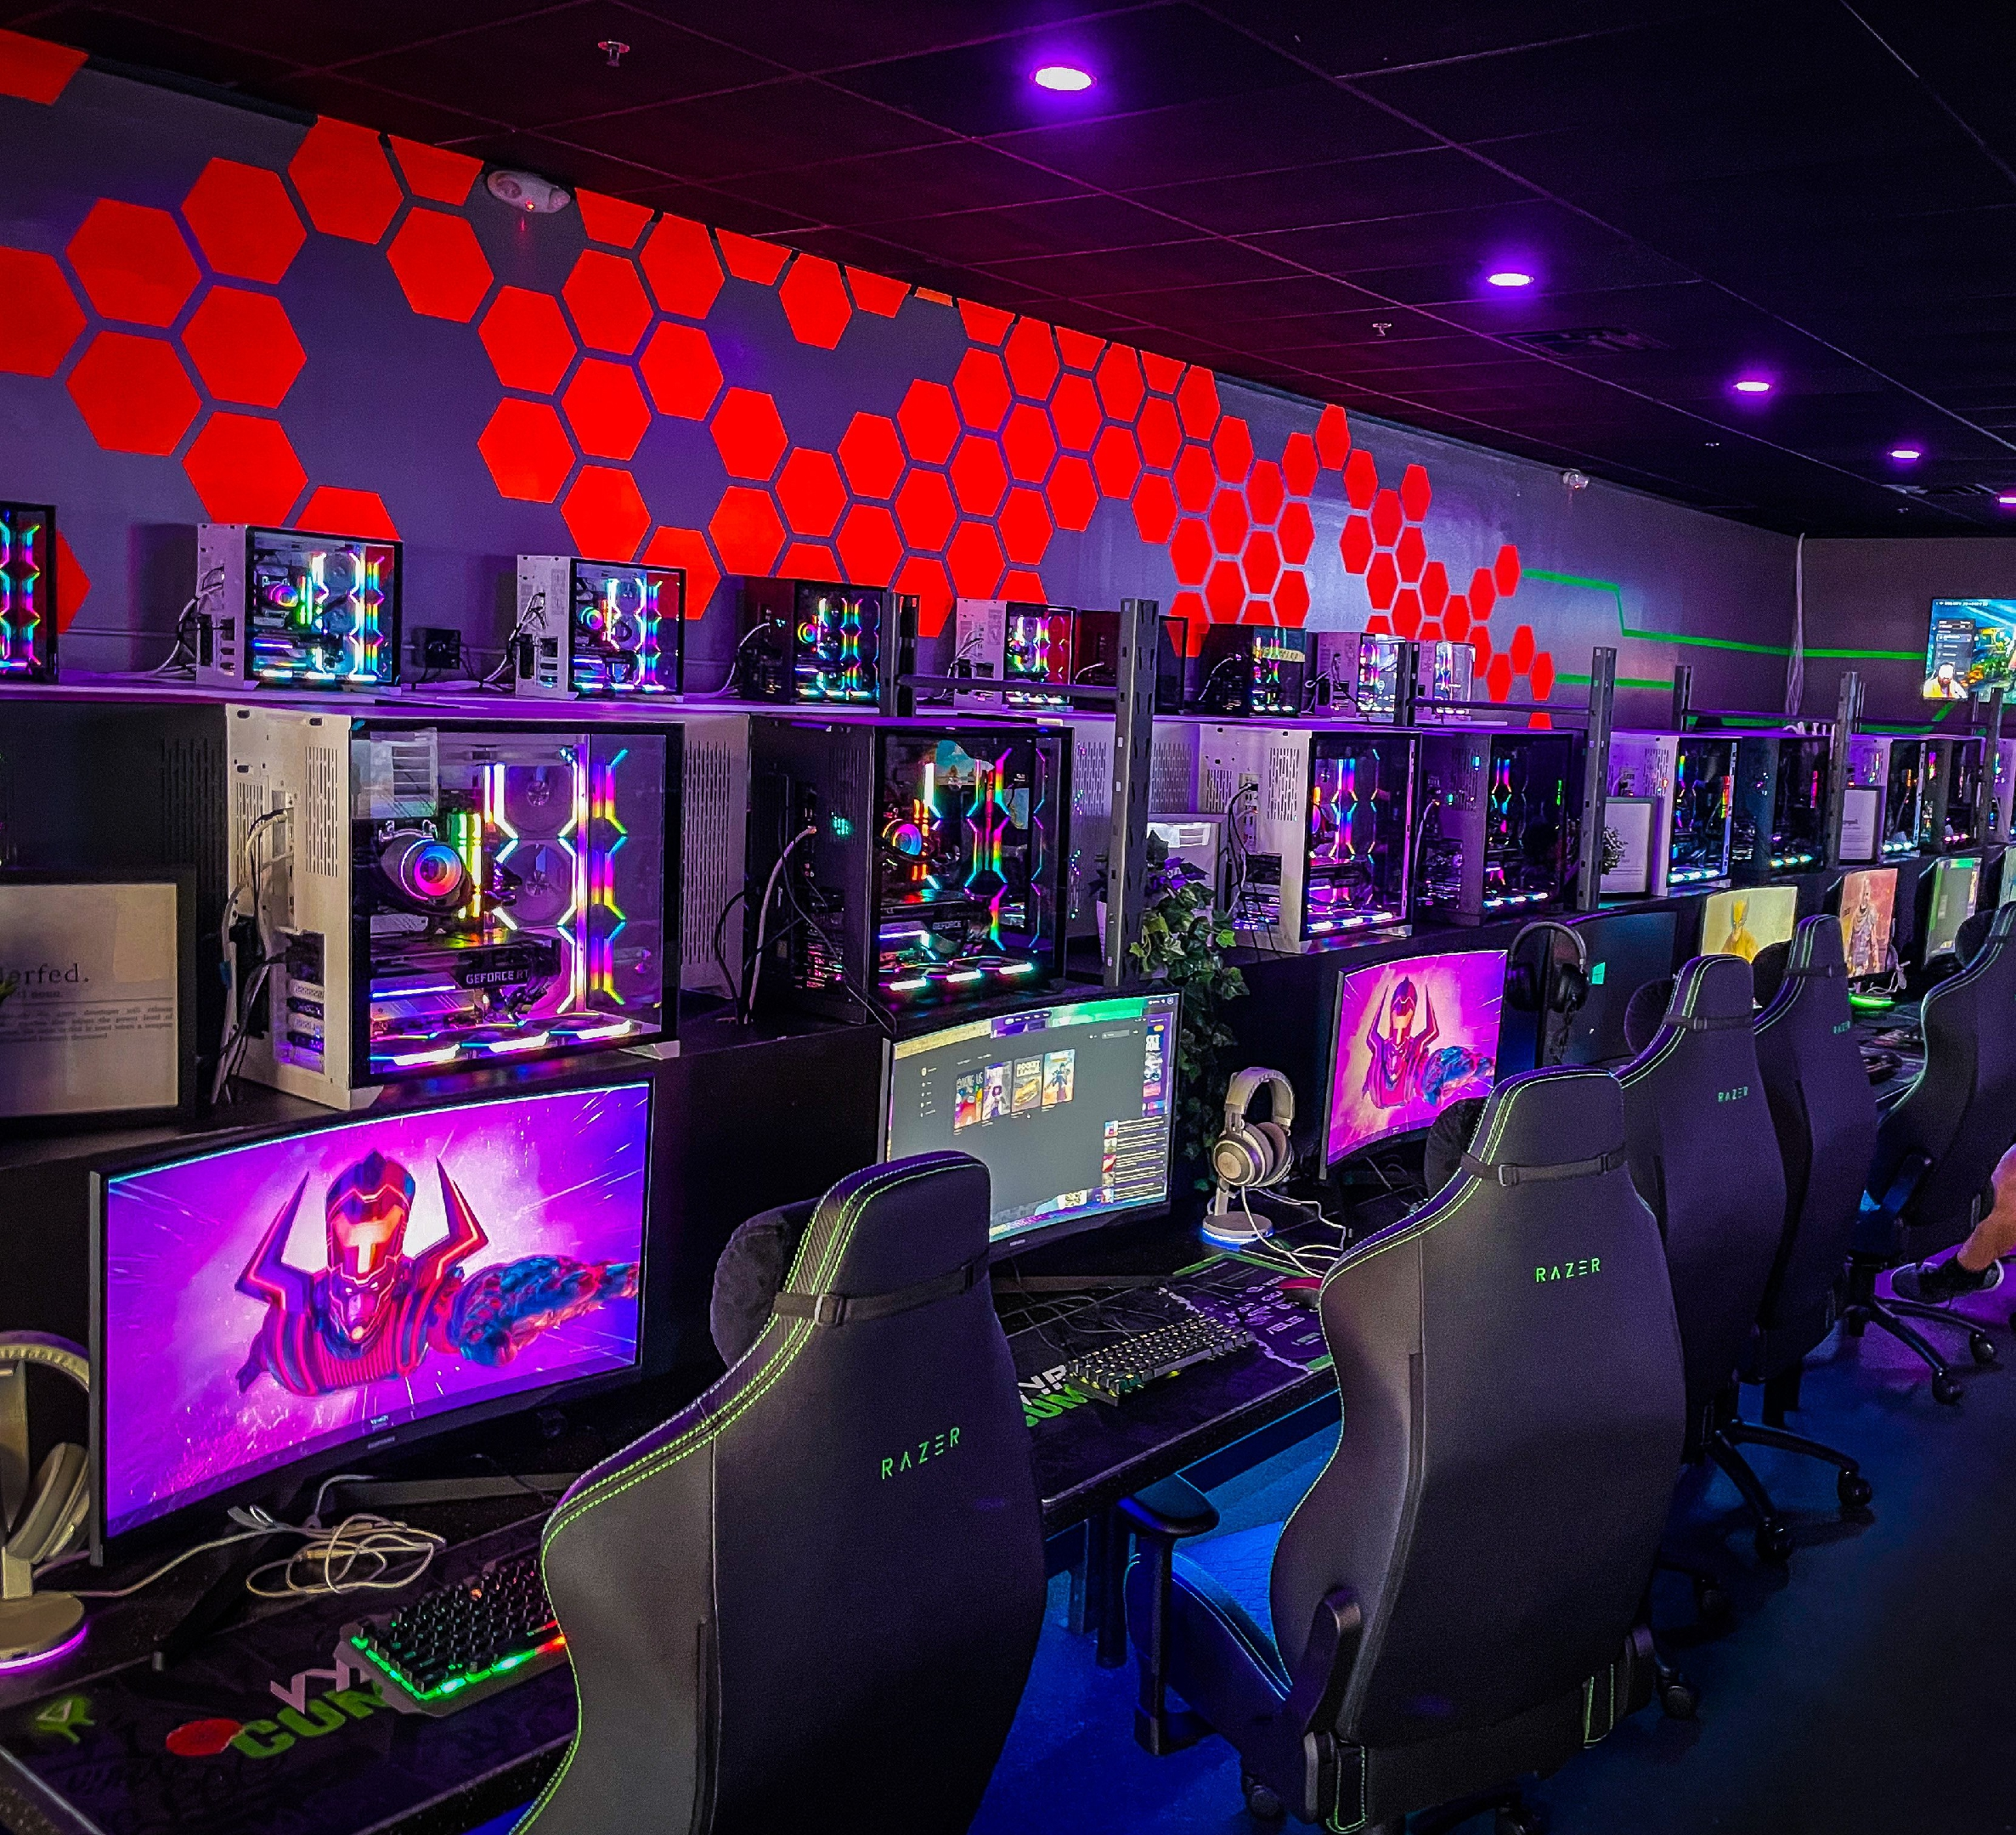 Vyral Teq has a dedicated arena for their gaming tournaments